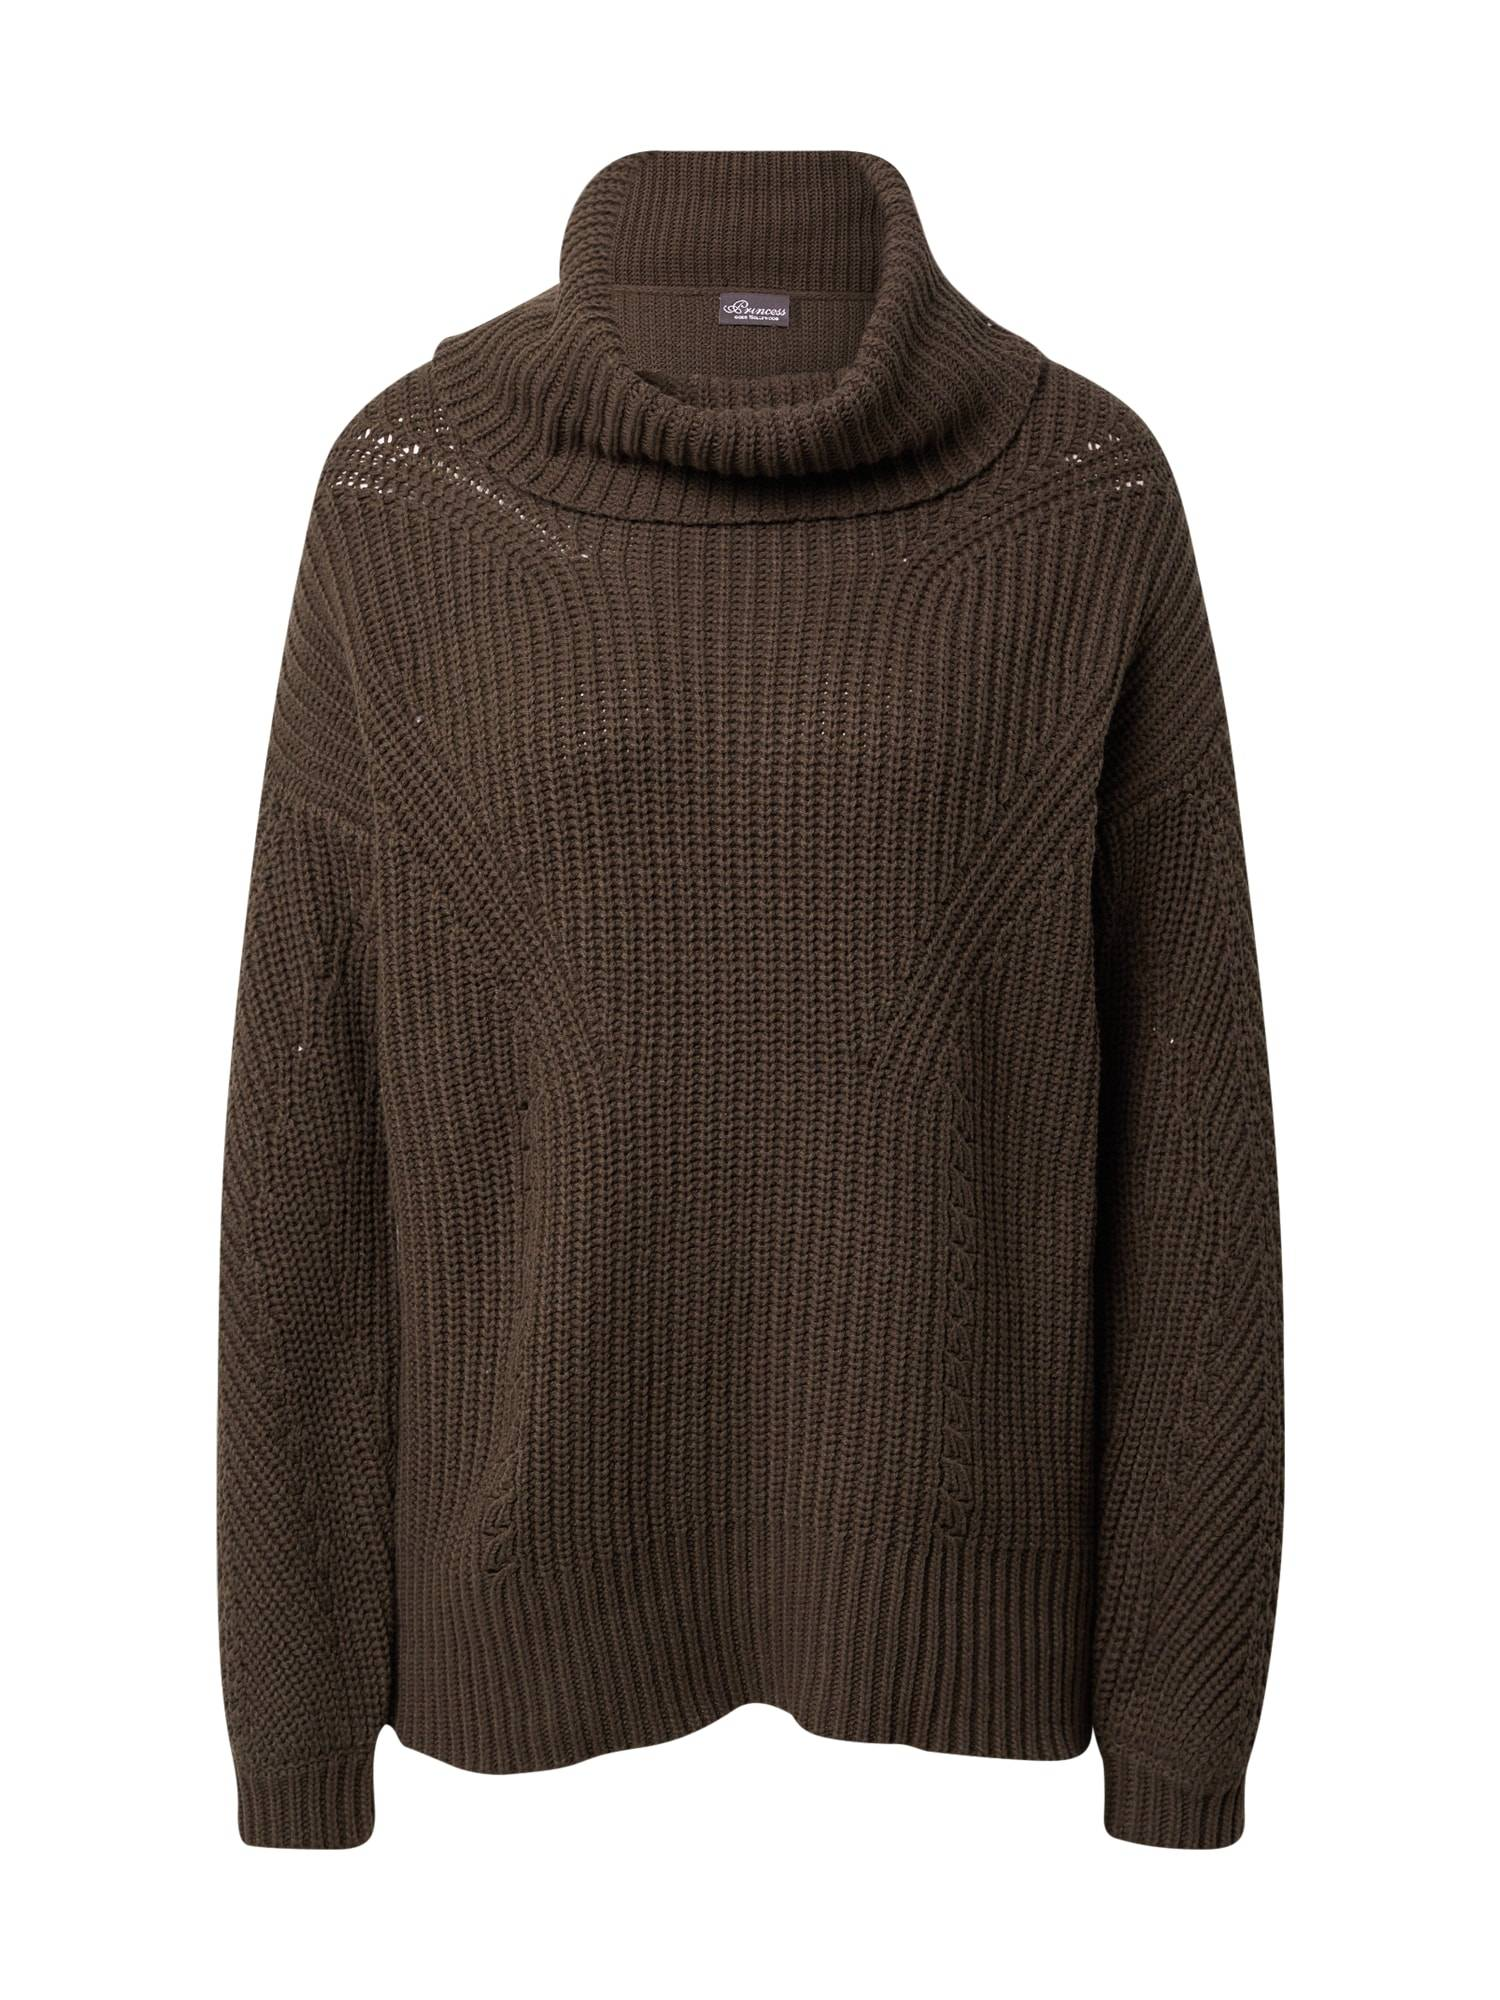 Princess Pull-over  - Marron - Taille: 42 - female